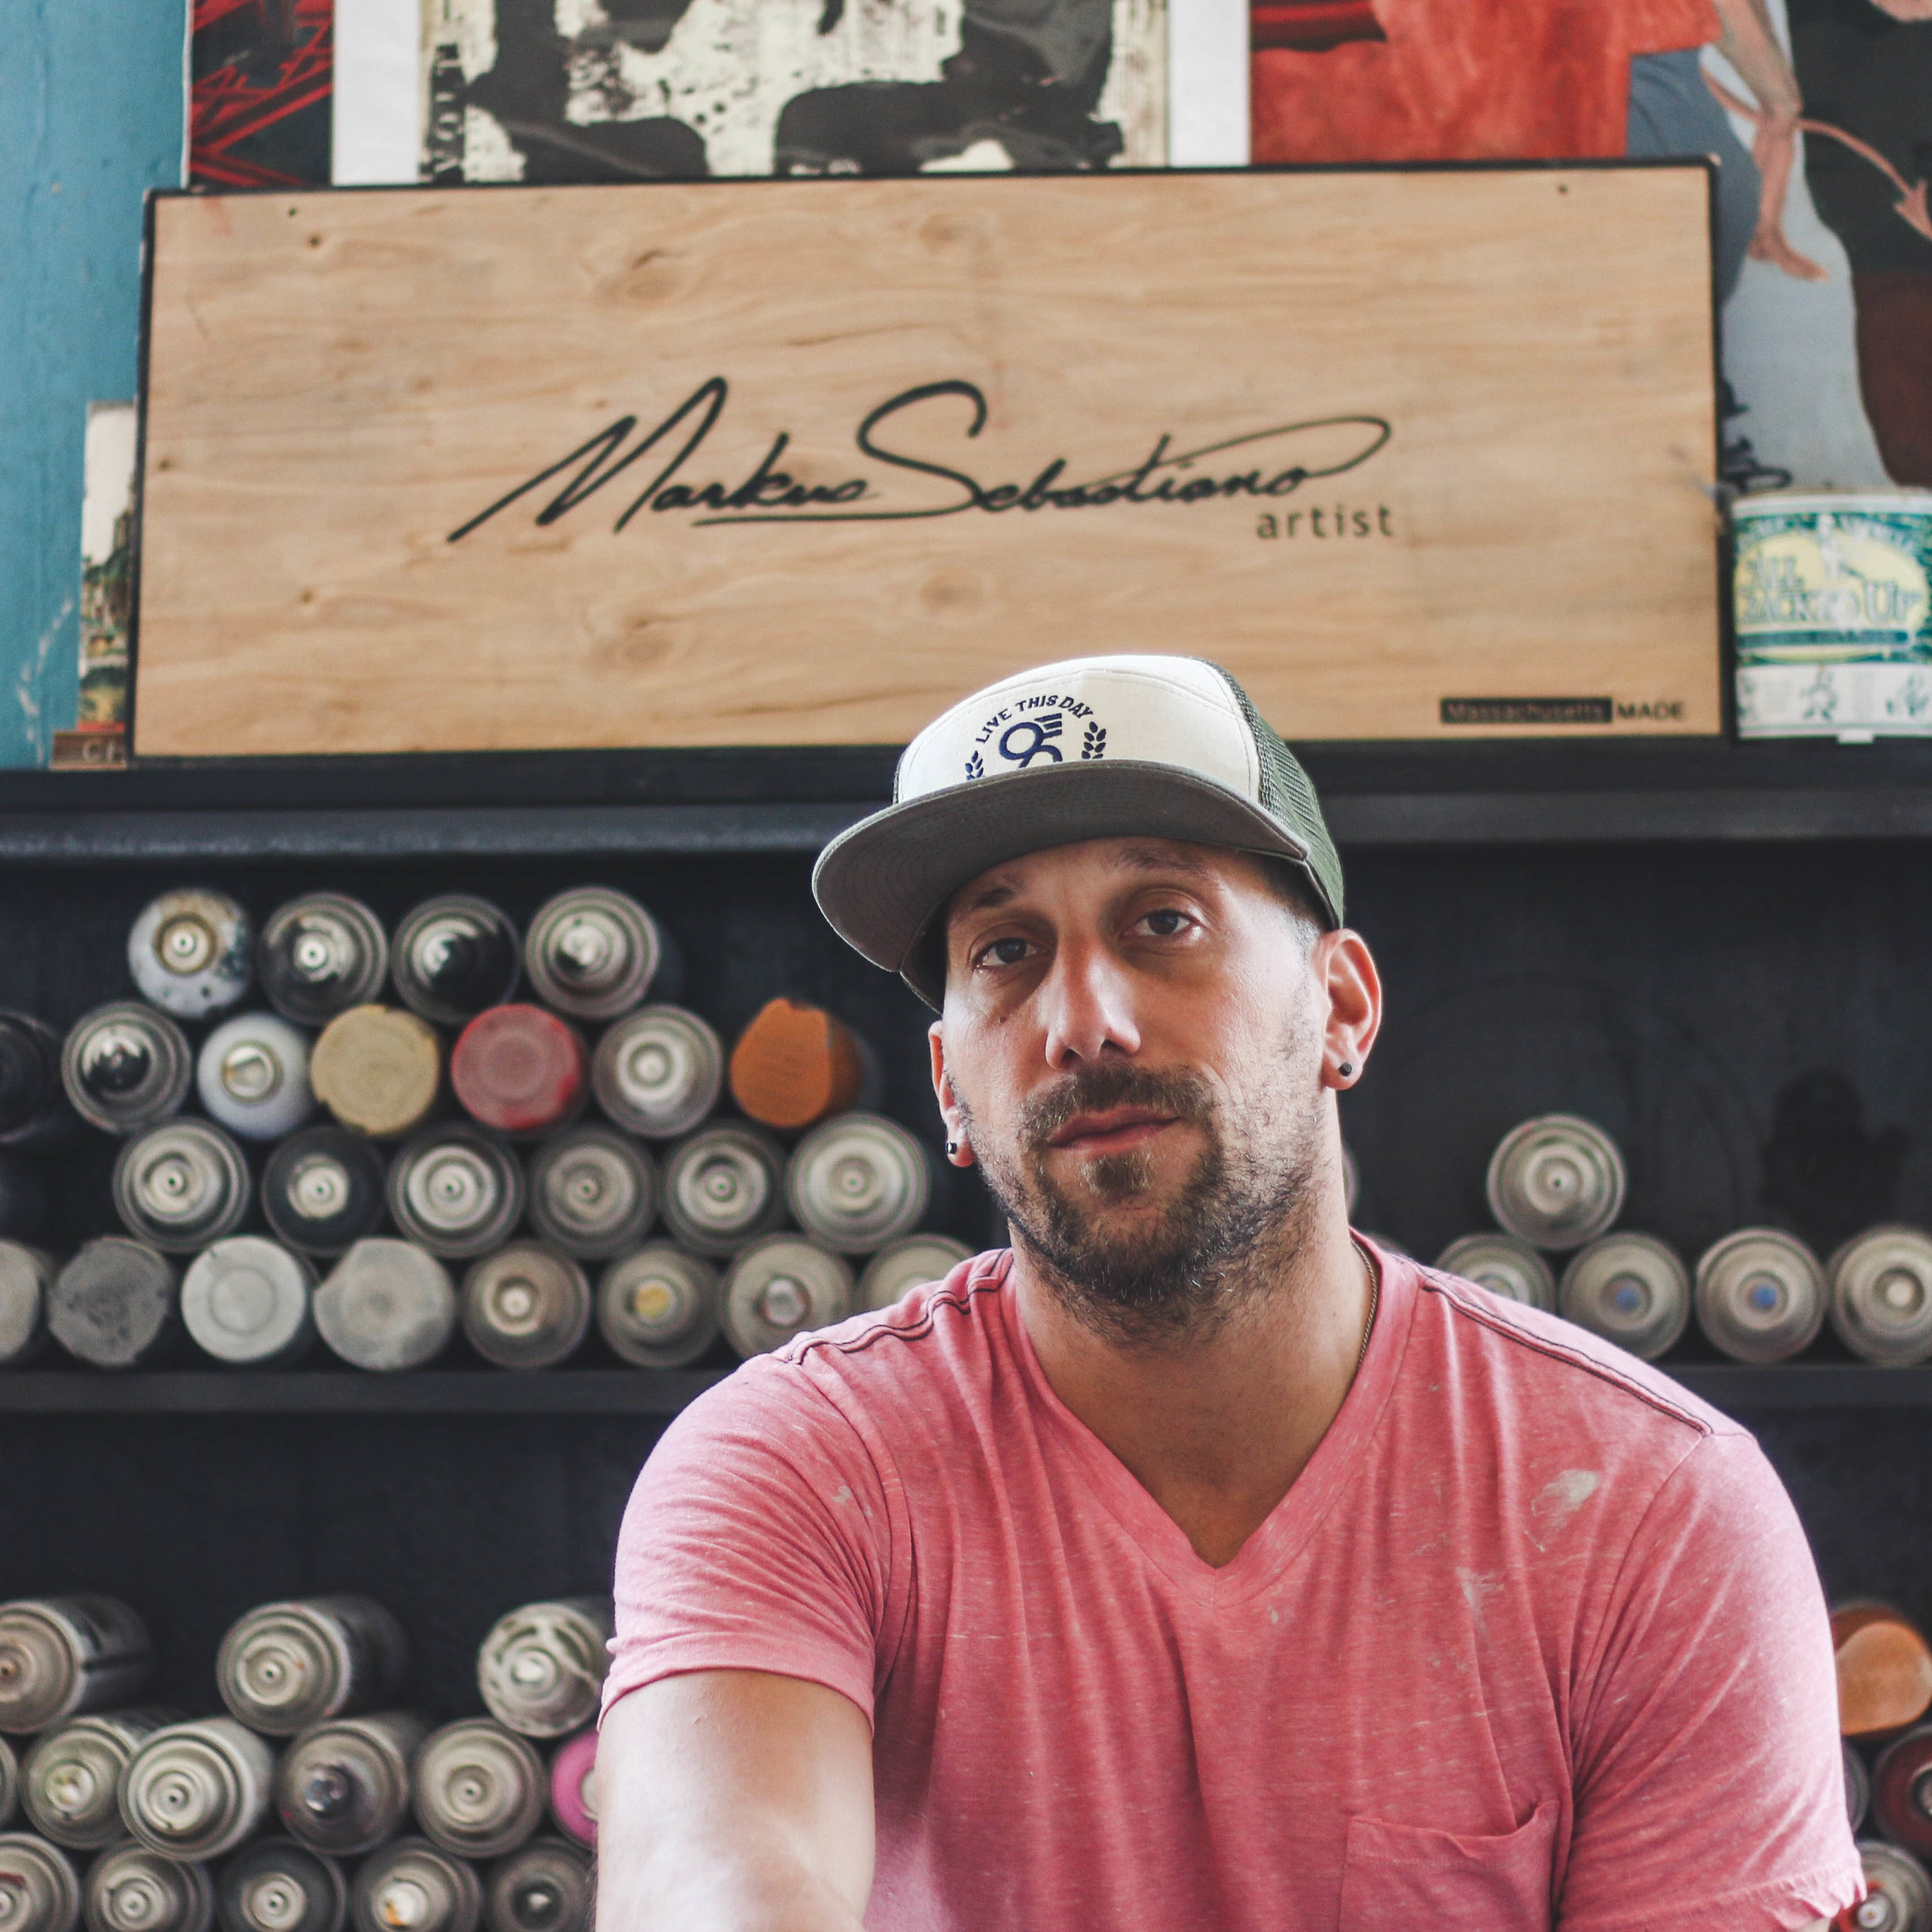 Markus sebastiano talkes about growing up in the area and what inspires his large scale, multi media work